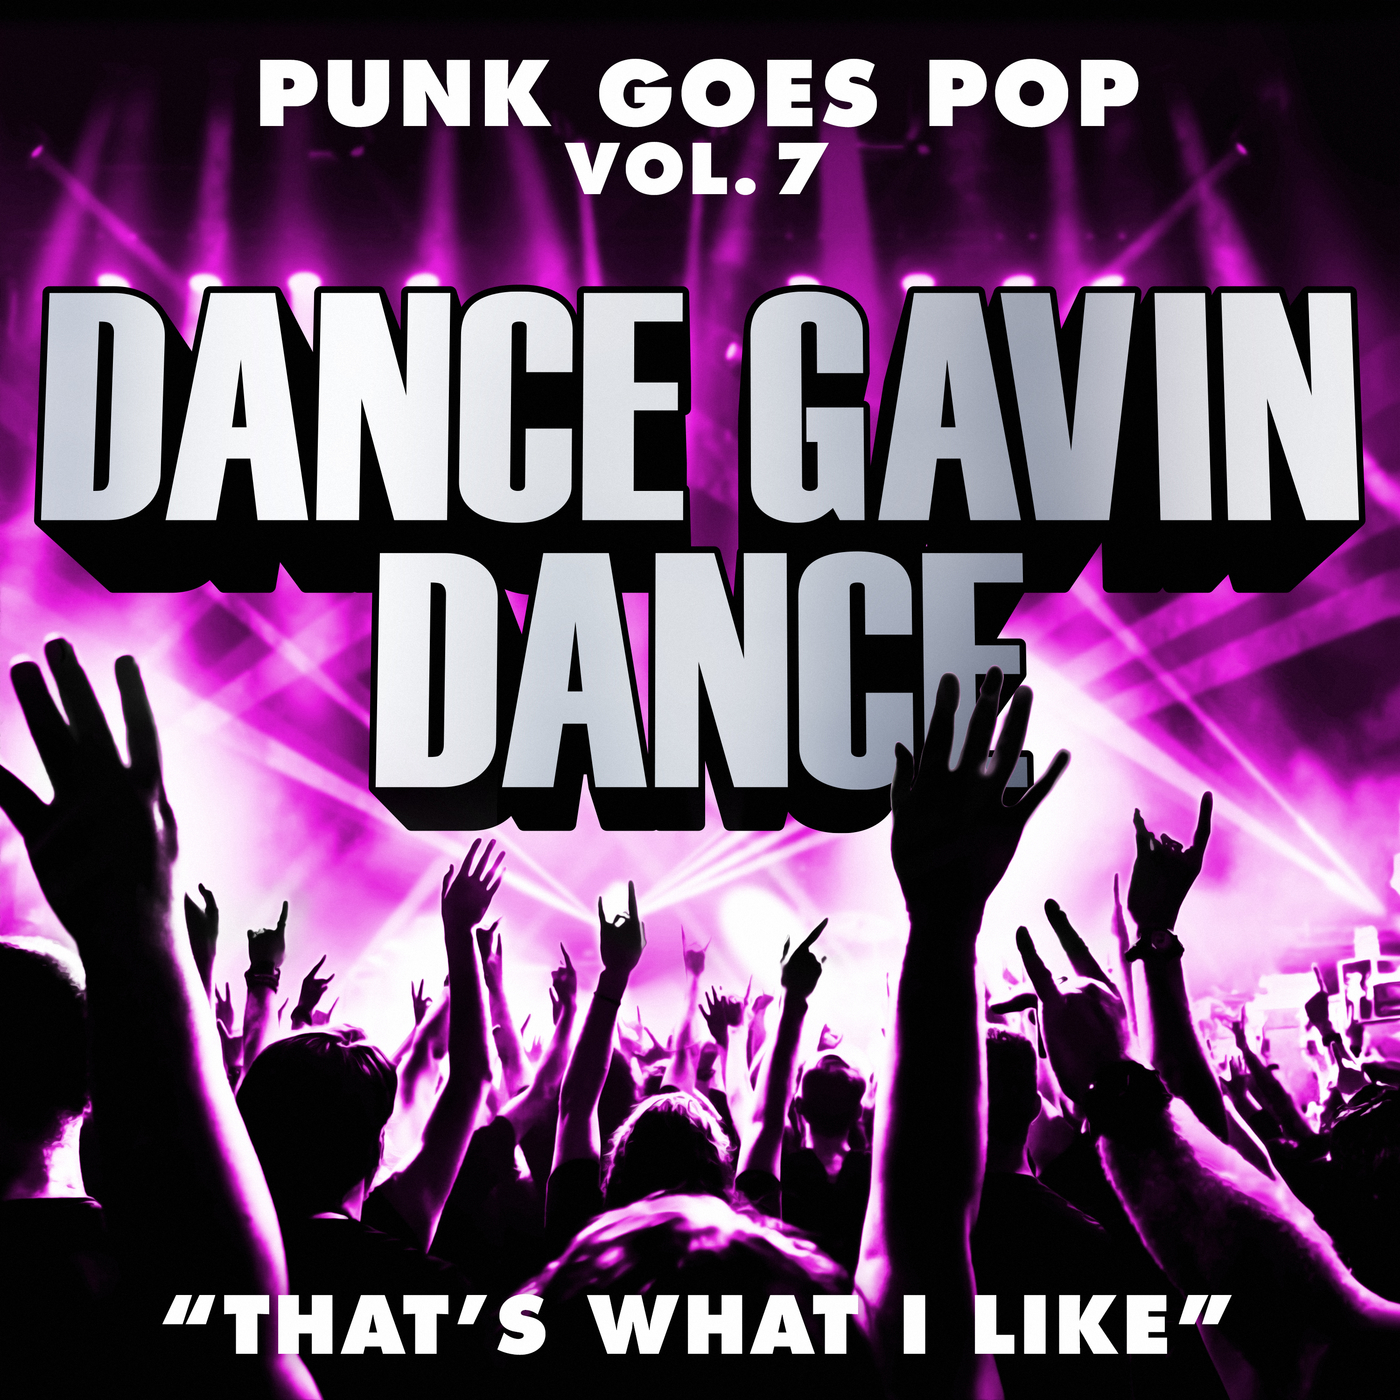 Dance Gavin Dance - That's What I Like [single] (2017)